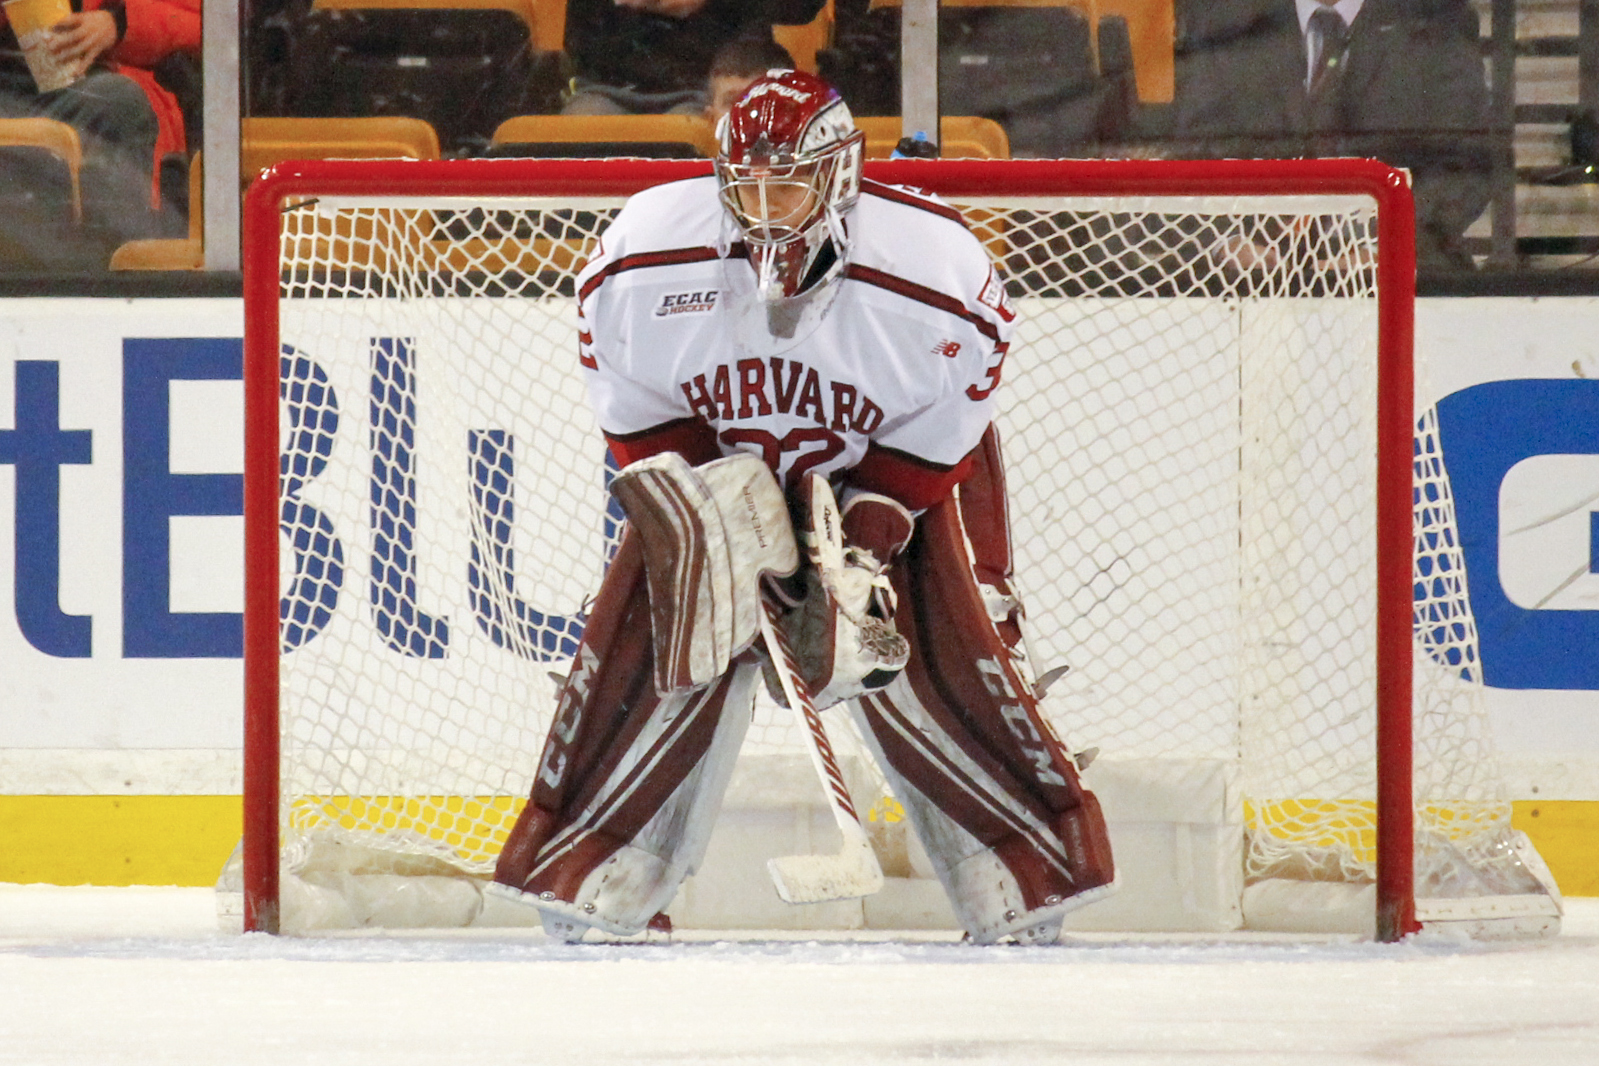 Sophomore net-minder Cameron Gornet was a surprise starter in Monday's Beanpot consolation game against BC, making his first career start.